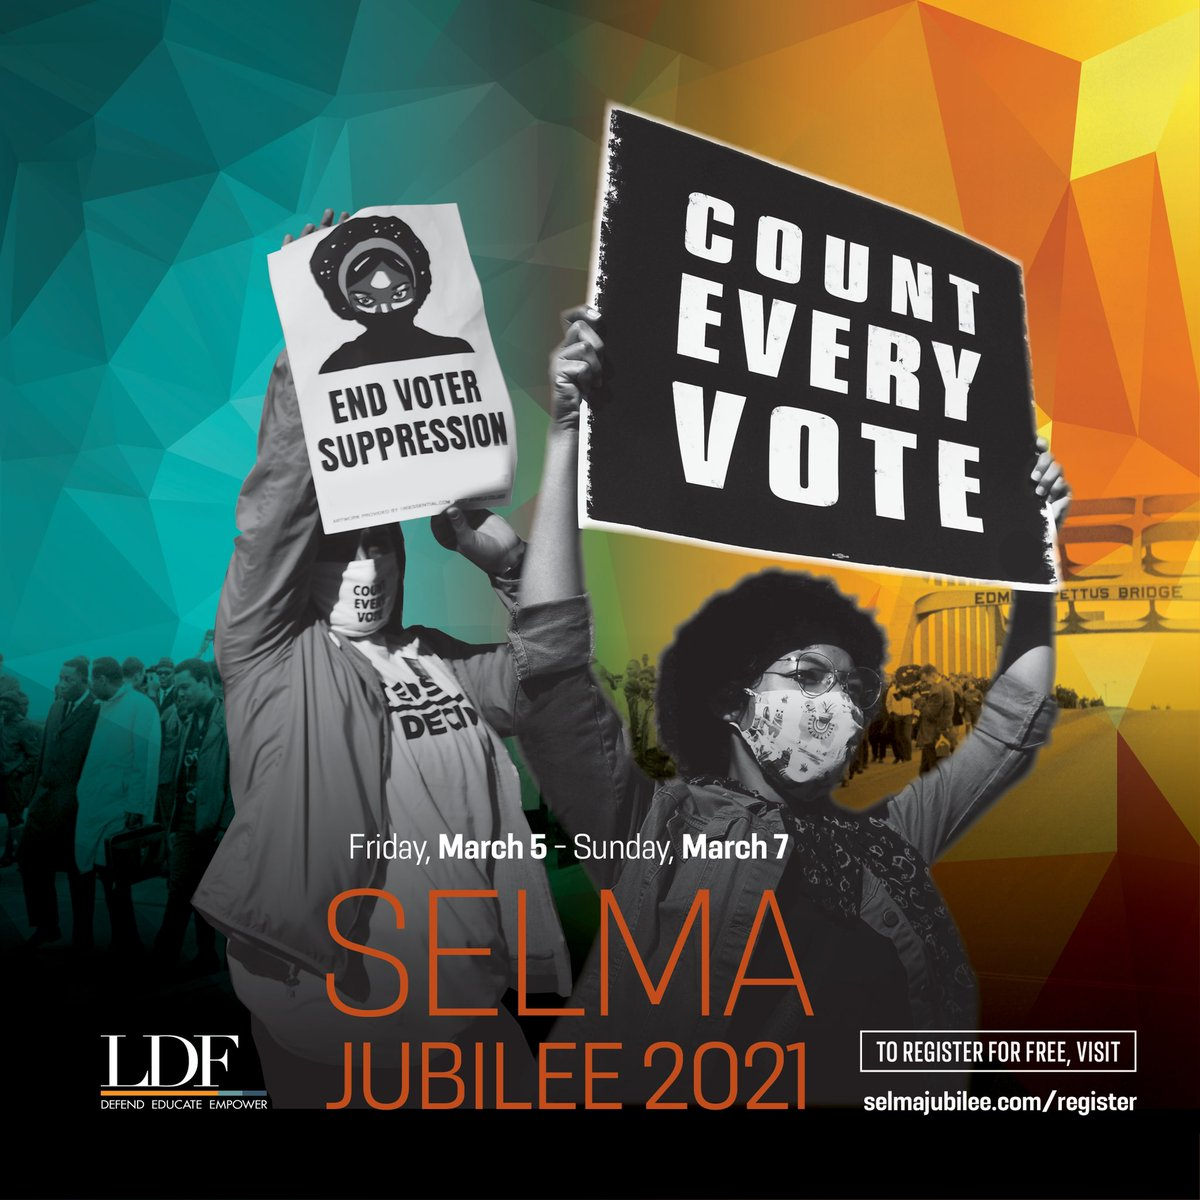 On March 6, join @Sifill_LDF and @NAACP_LDF at the annual #SelmaJubilee to discuss the power of the Black voter, the 2020 election, and how we can defeat voter suppression moving forward. Learn more and register to attend this free virtual event: . #BeLOVE